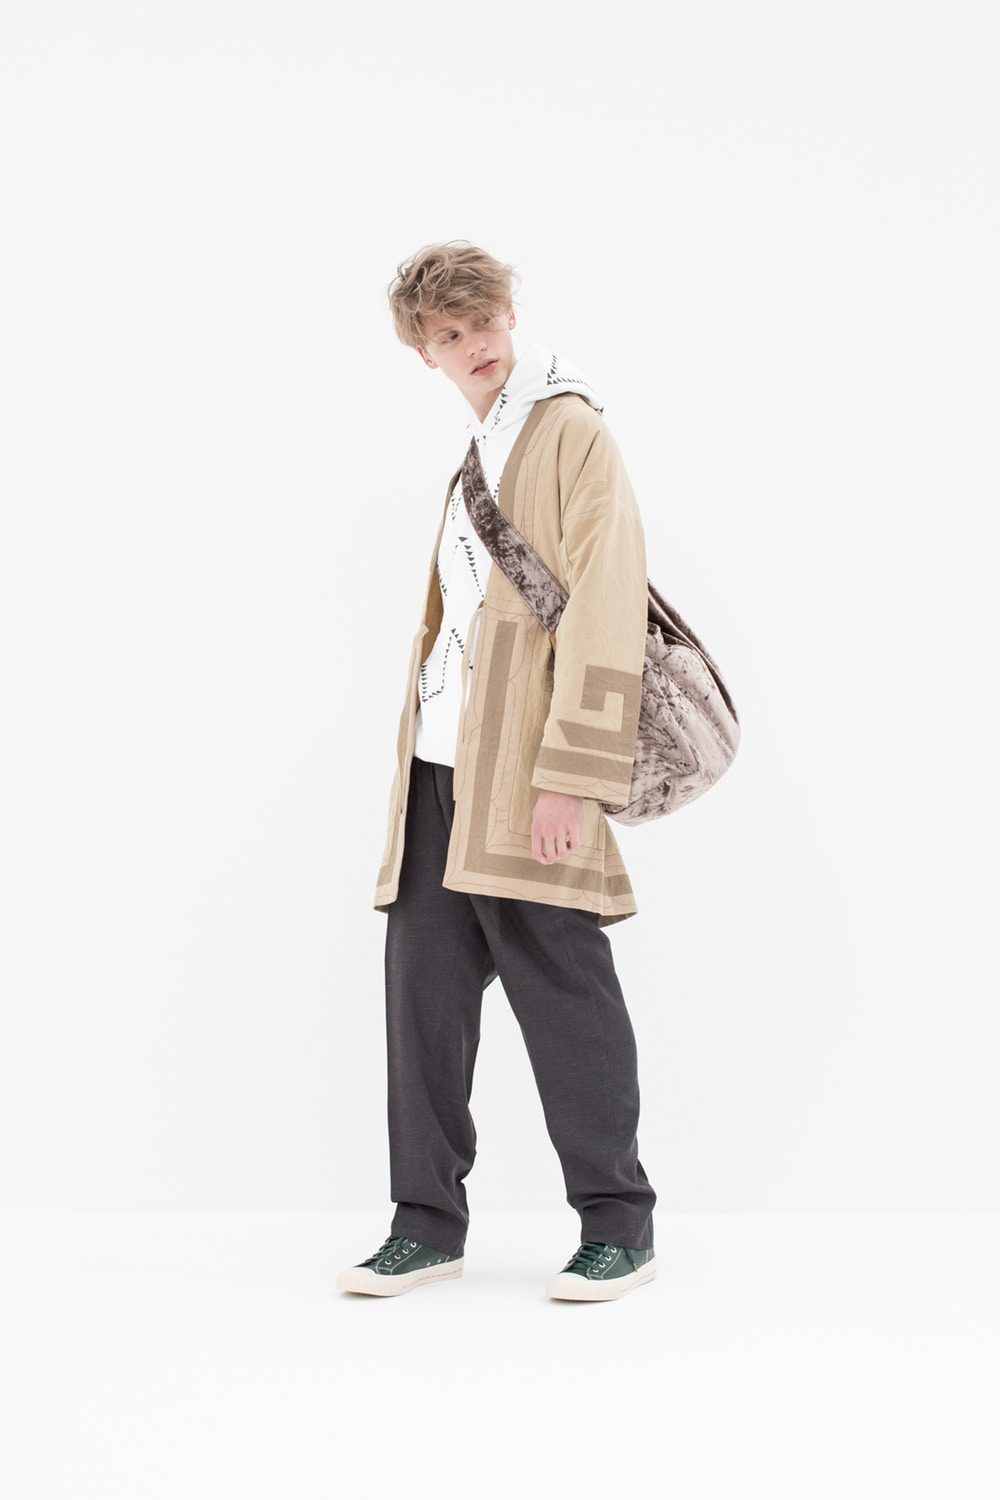 visvim-2018-fall-winter-lookbook-4.jpg